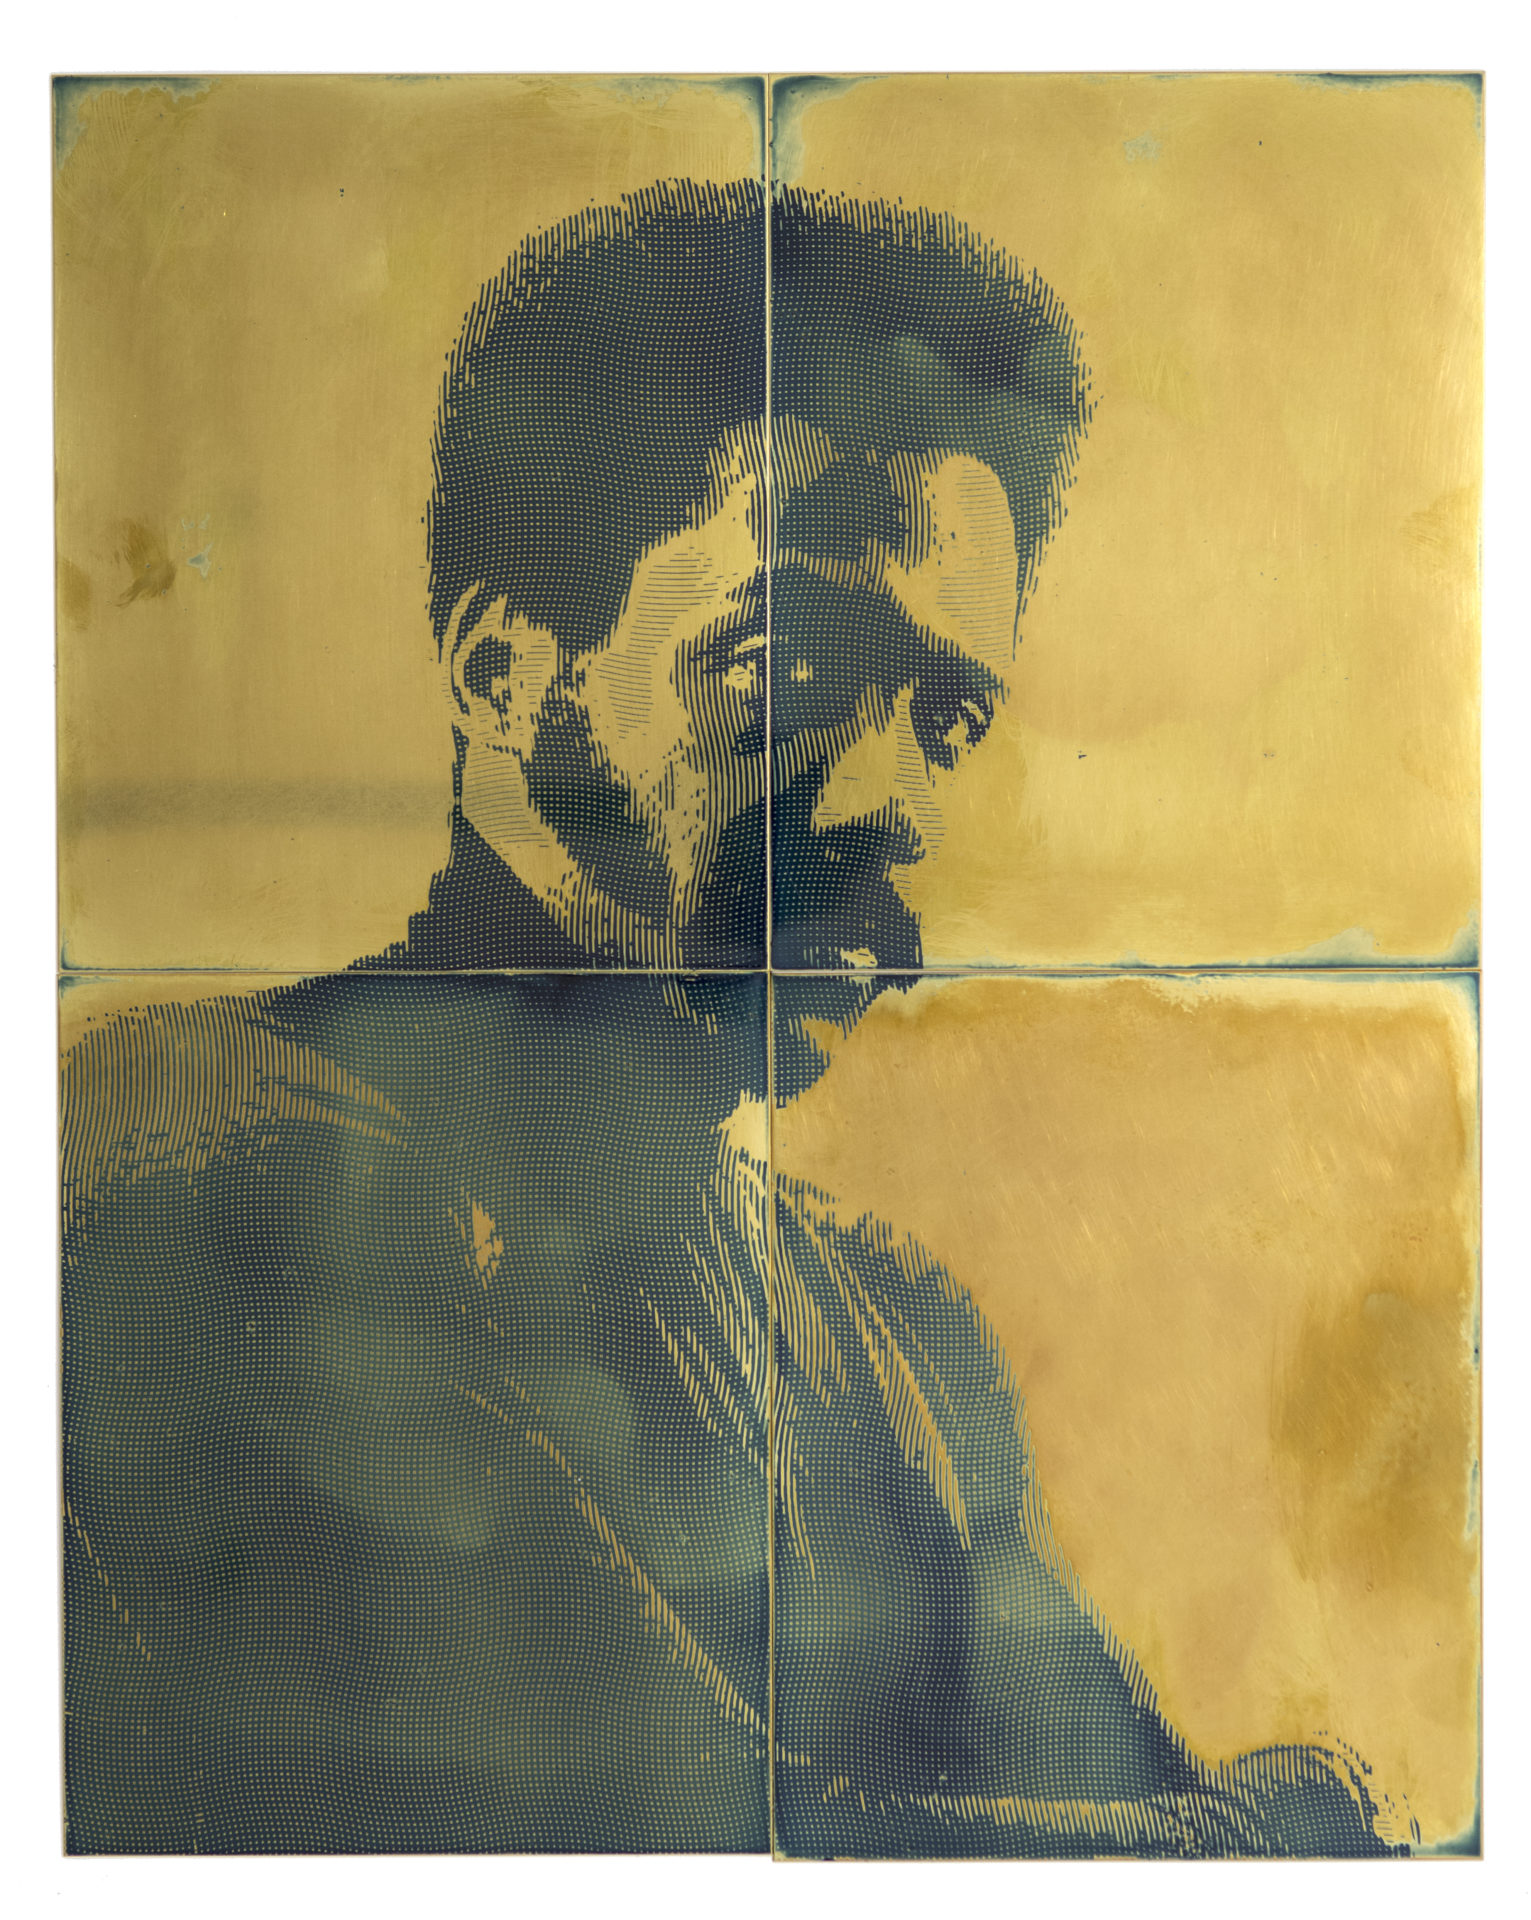 Blaxpotation: Richard Roundtree, émulsion photosensible sur laiton, 20 x 30 cm, 2018